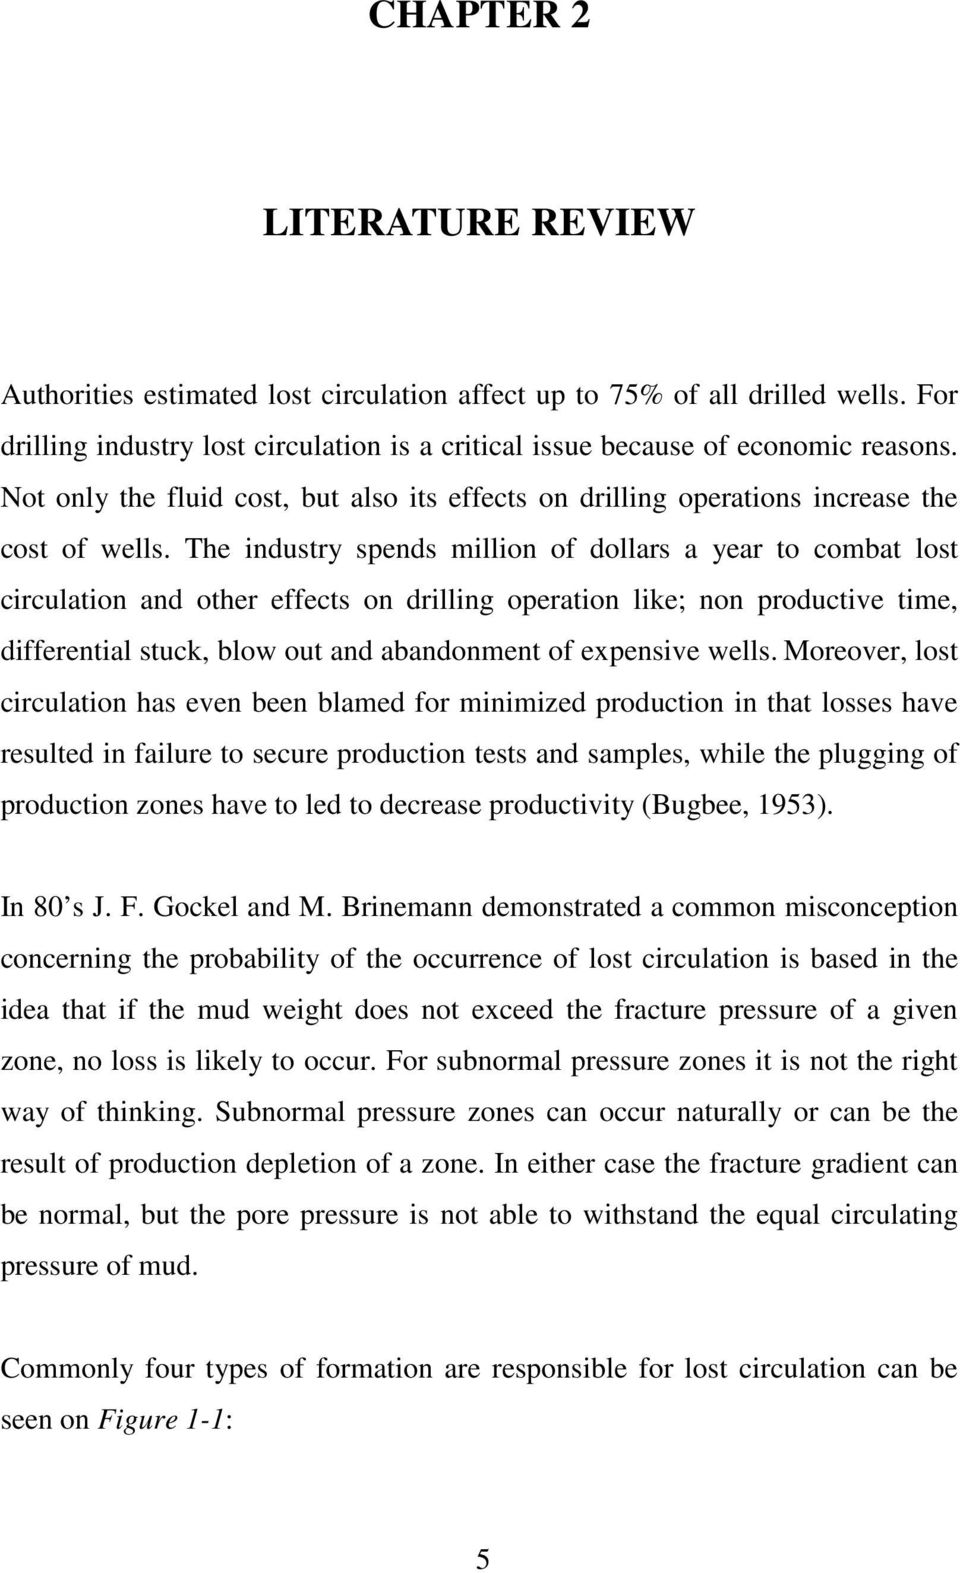 The industry spends million of dollars a year to combat lost circulation and other effects on drilling operation like; non productive time, differential stuck, blow out and abandonment of expensive